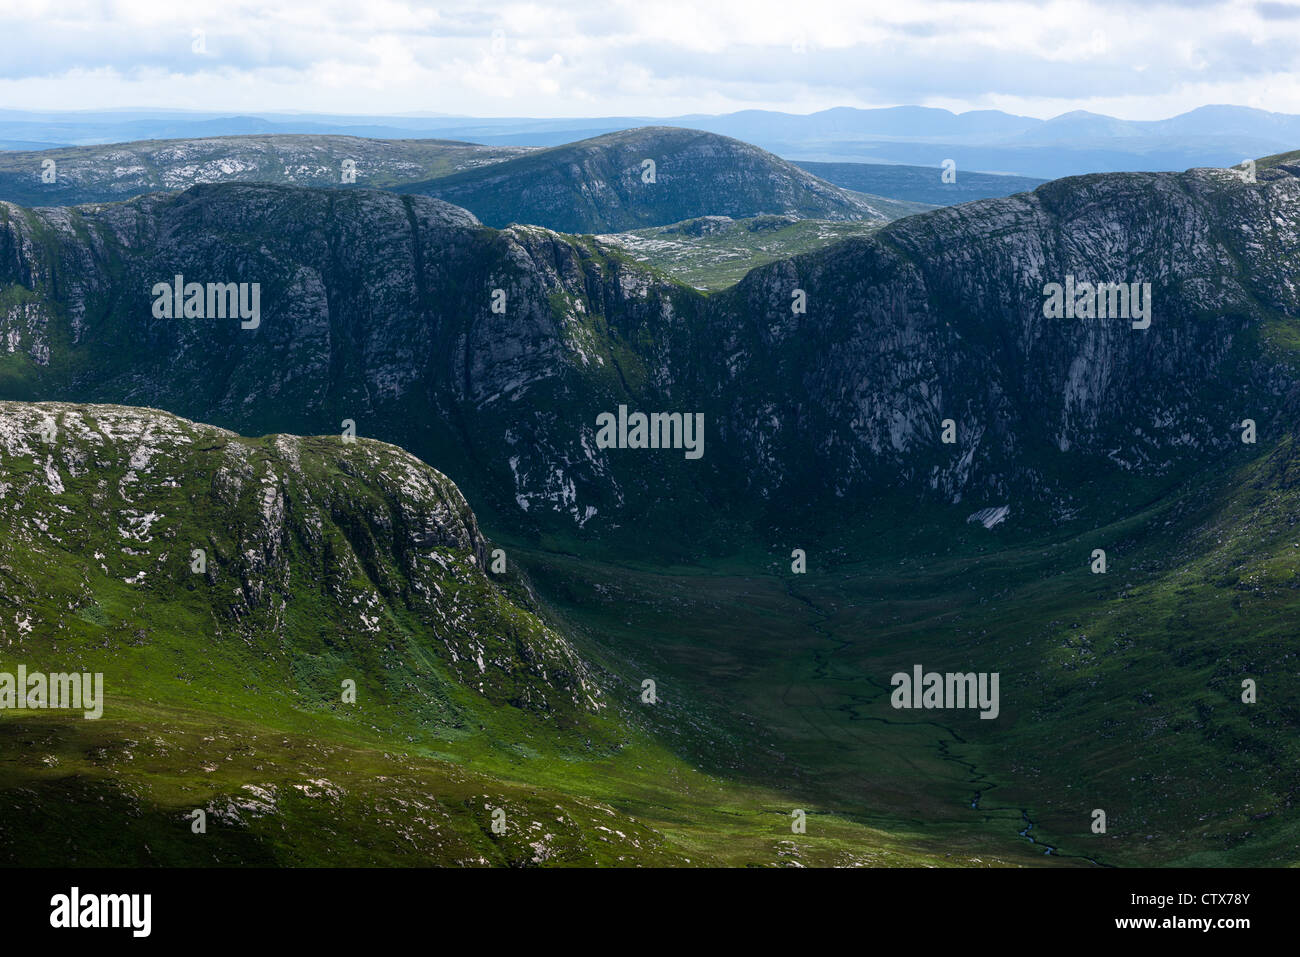 View from Mount Errigal of poison glen and Derryveagh Mountains in Glenveagh national park, Donegal, Ireland. - Stock Image